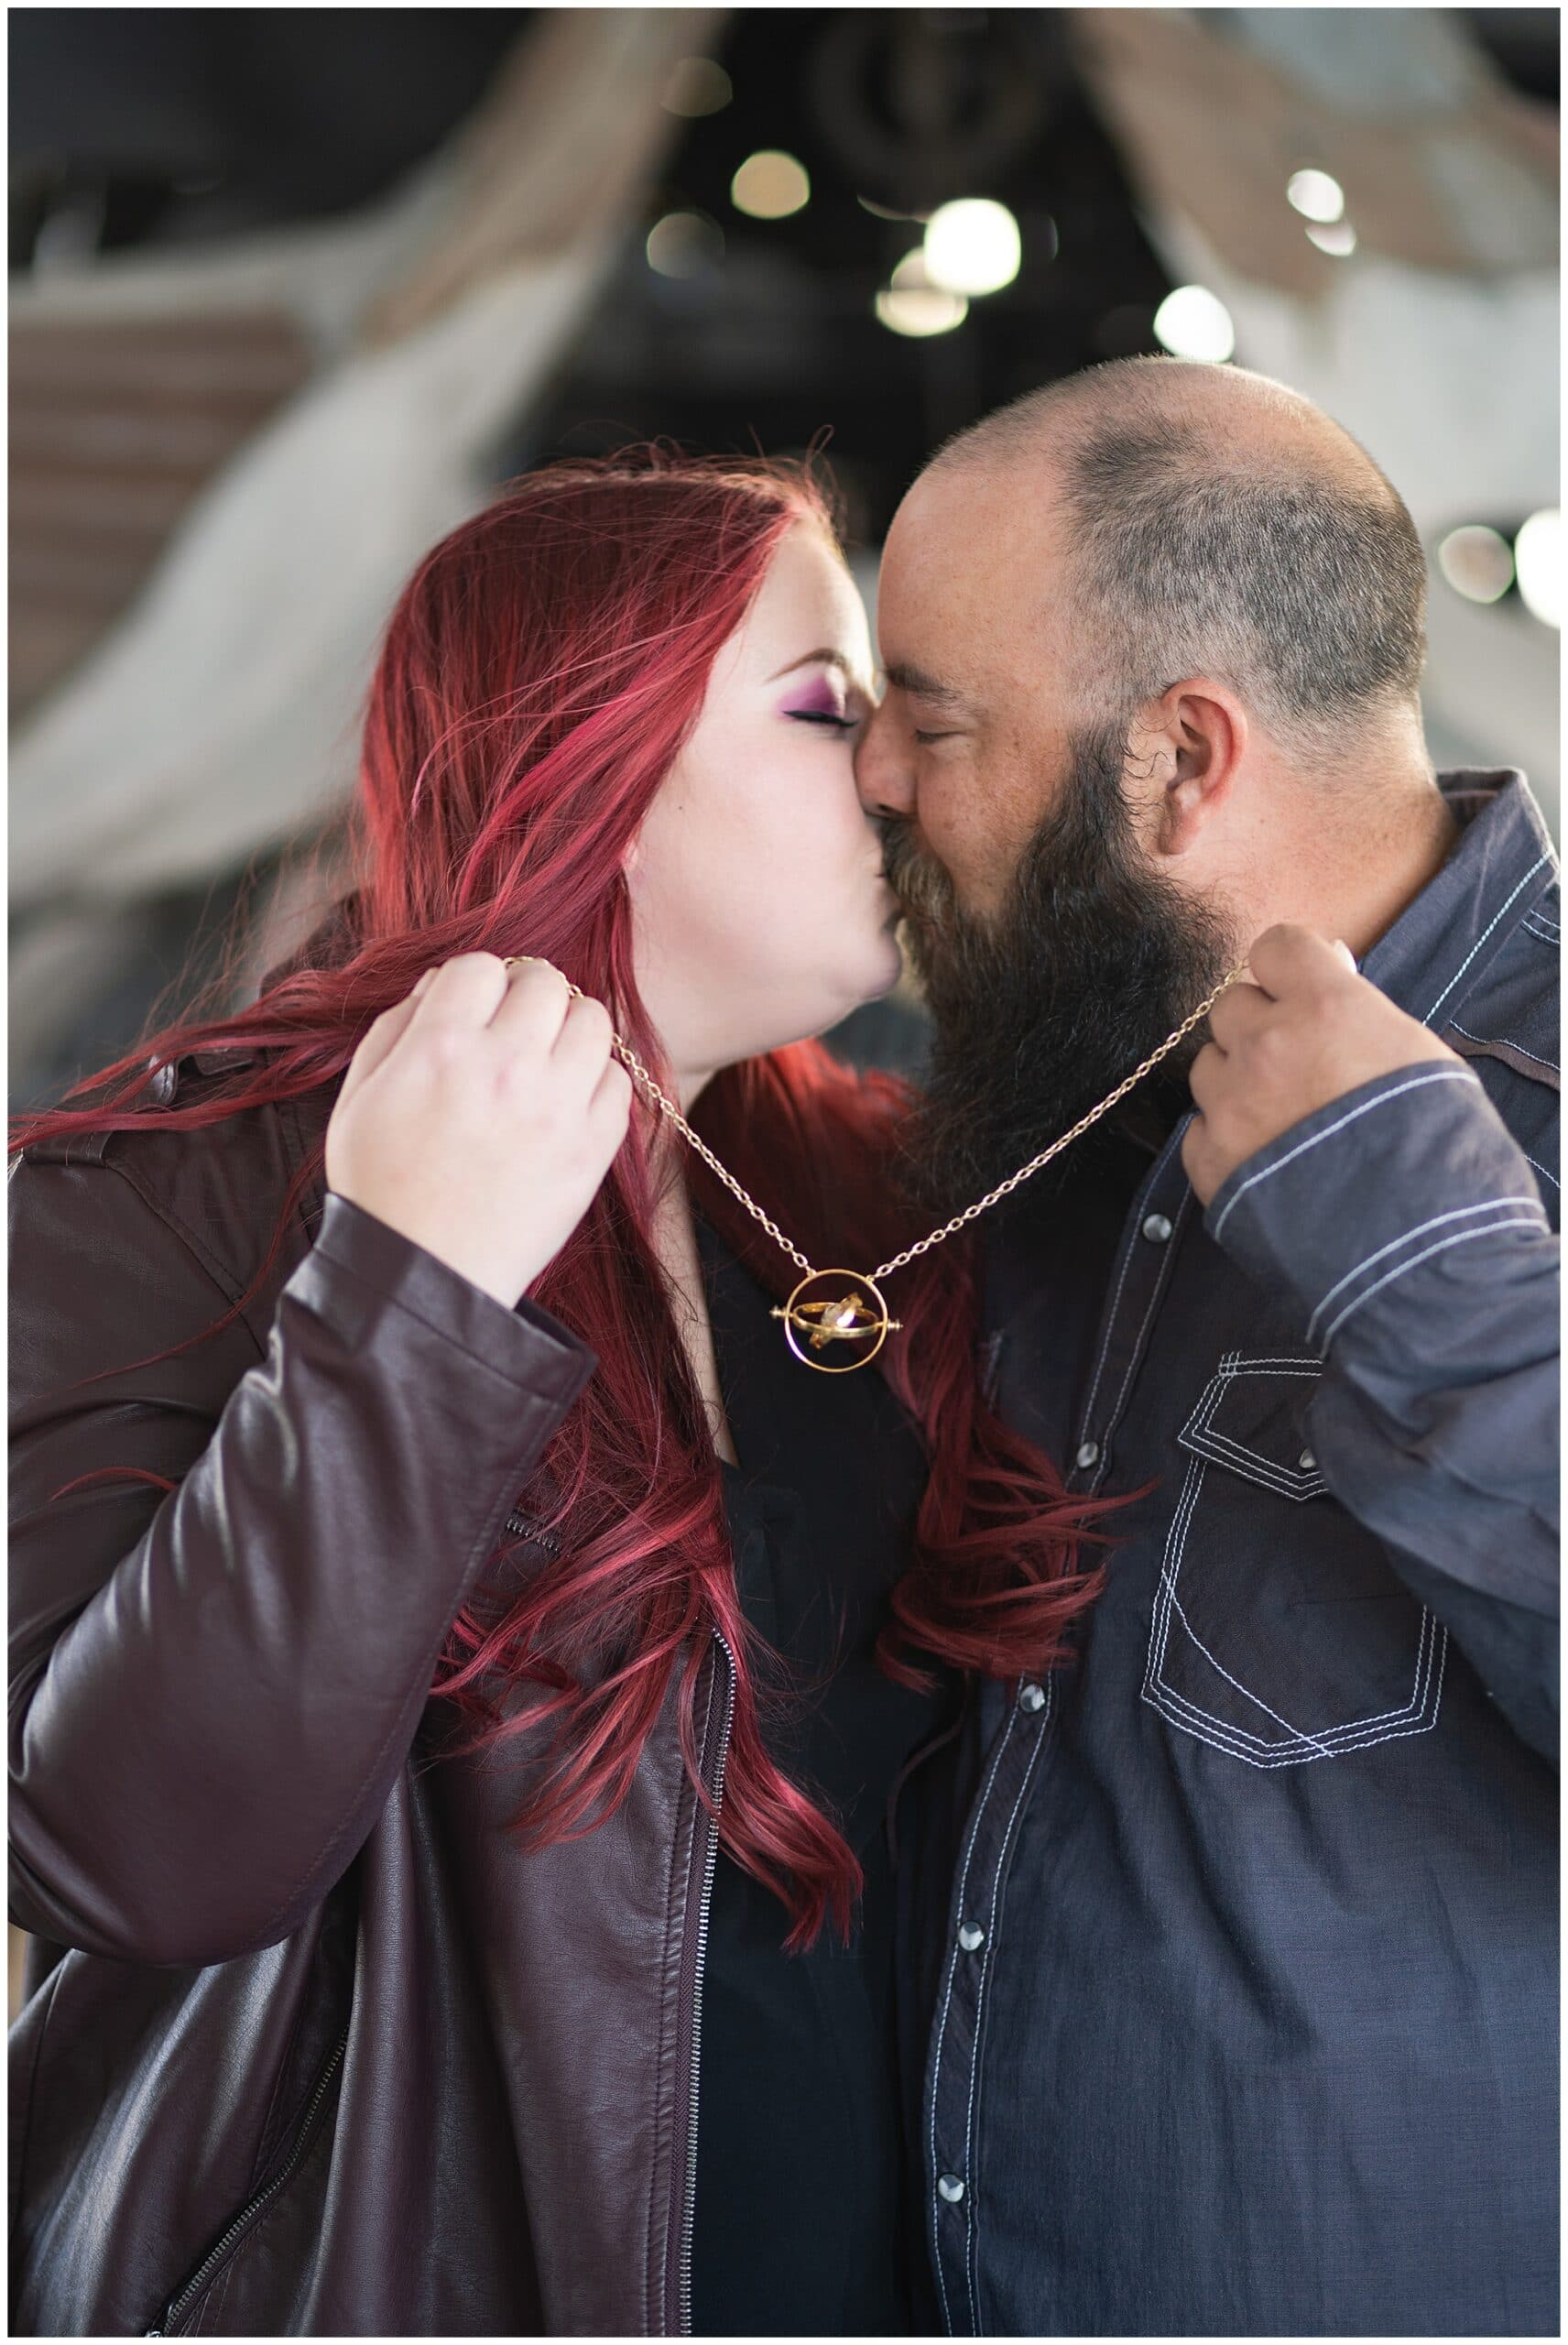 Harry Potter Engagement Session at St. Arnold's Brewery | Laura & Justin